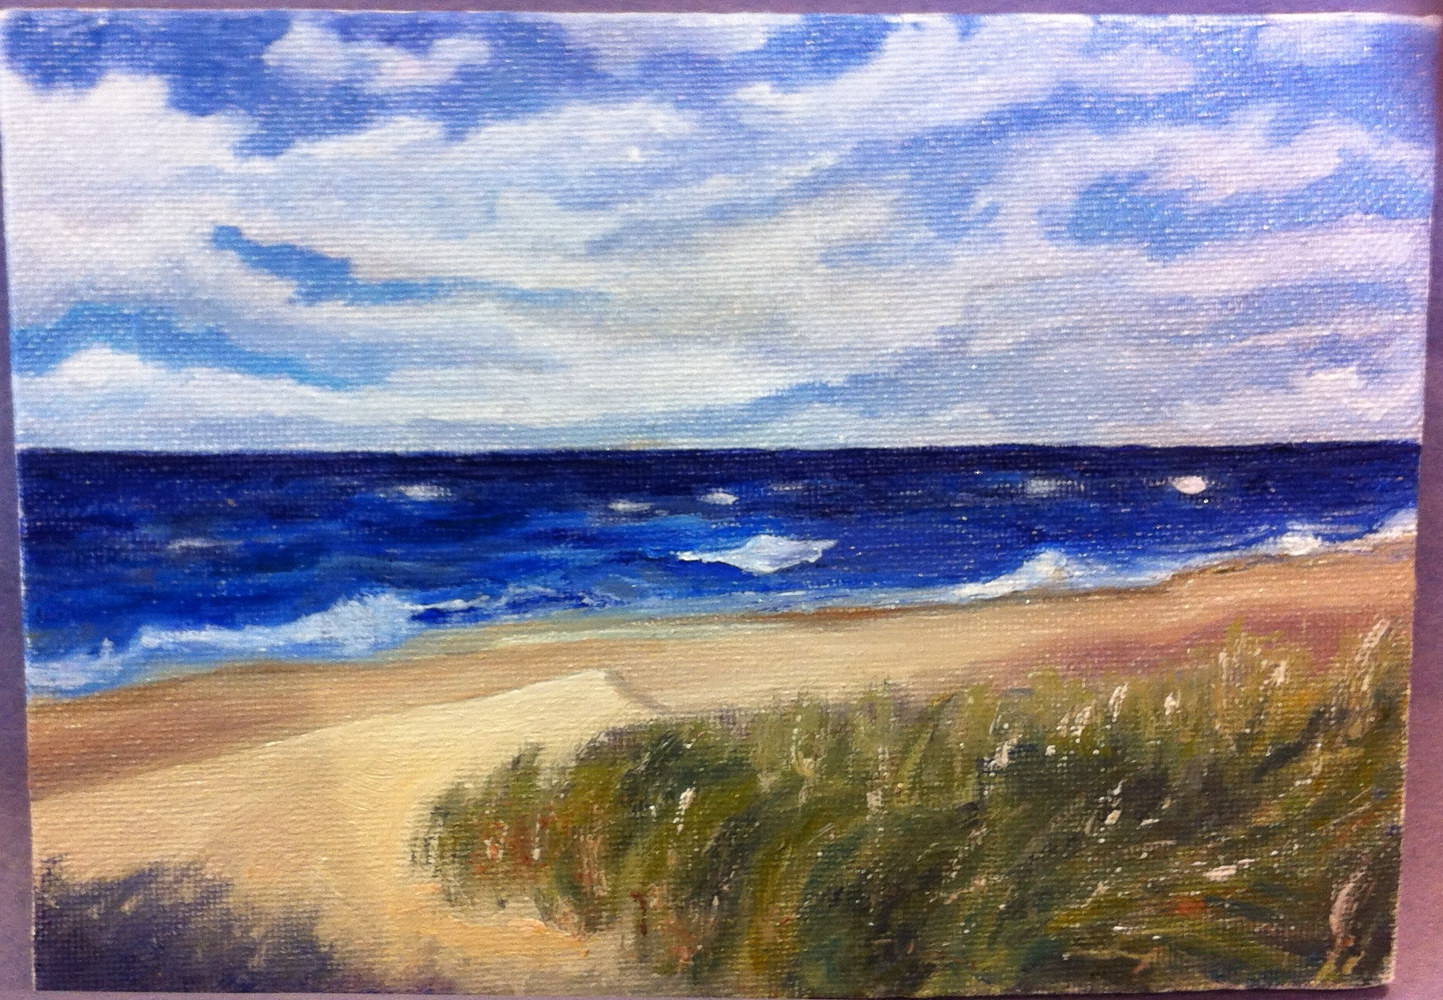 Oil painting WINDSWEPT by Anastasia O'melveny